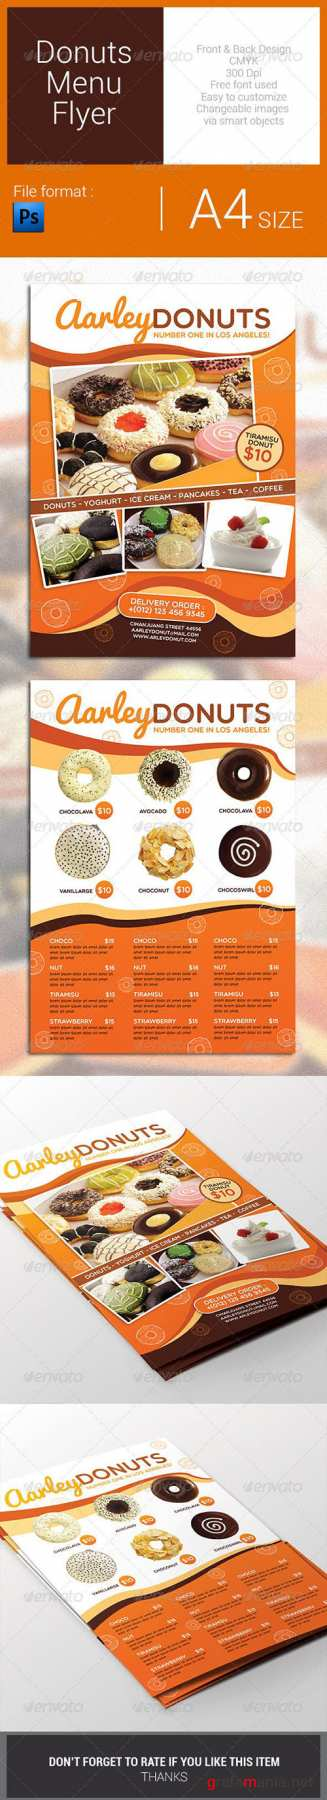 GR - Donuts Menu Flyer 7823541